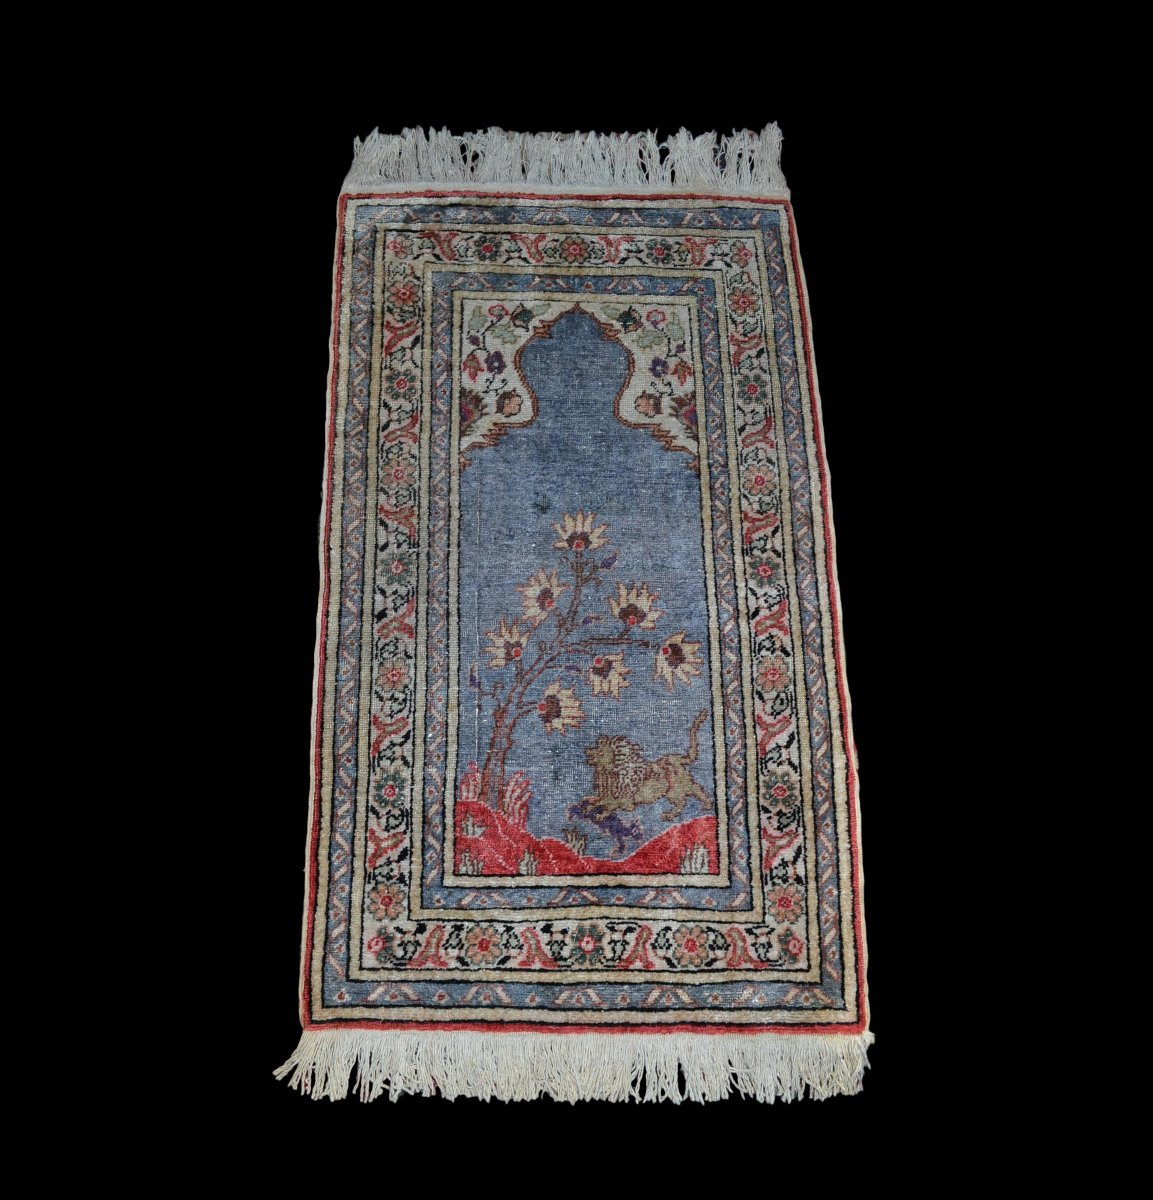 Carpet Bursa, Turkey, 63 Cm X 123 Cm, Silk And Wool, Early Twentieth In Very Good Condition